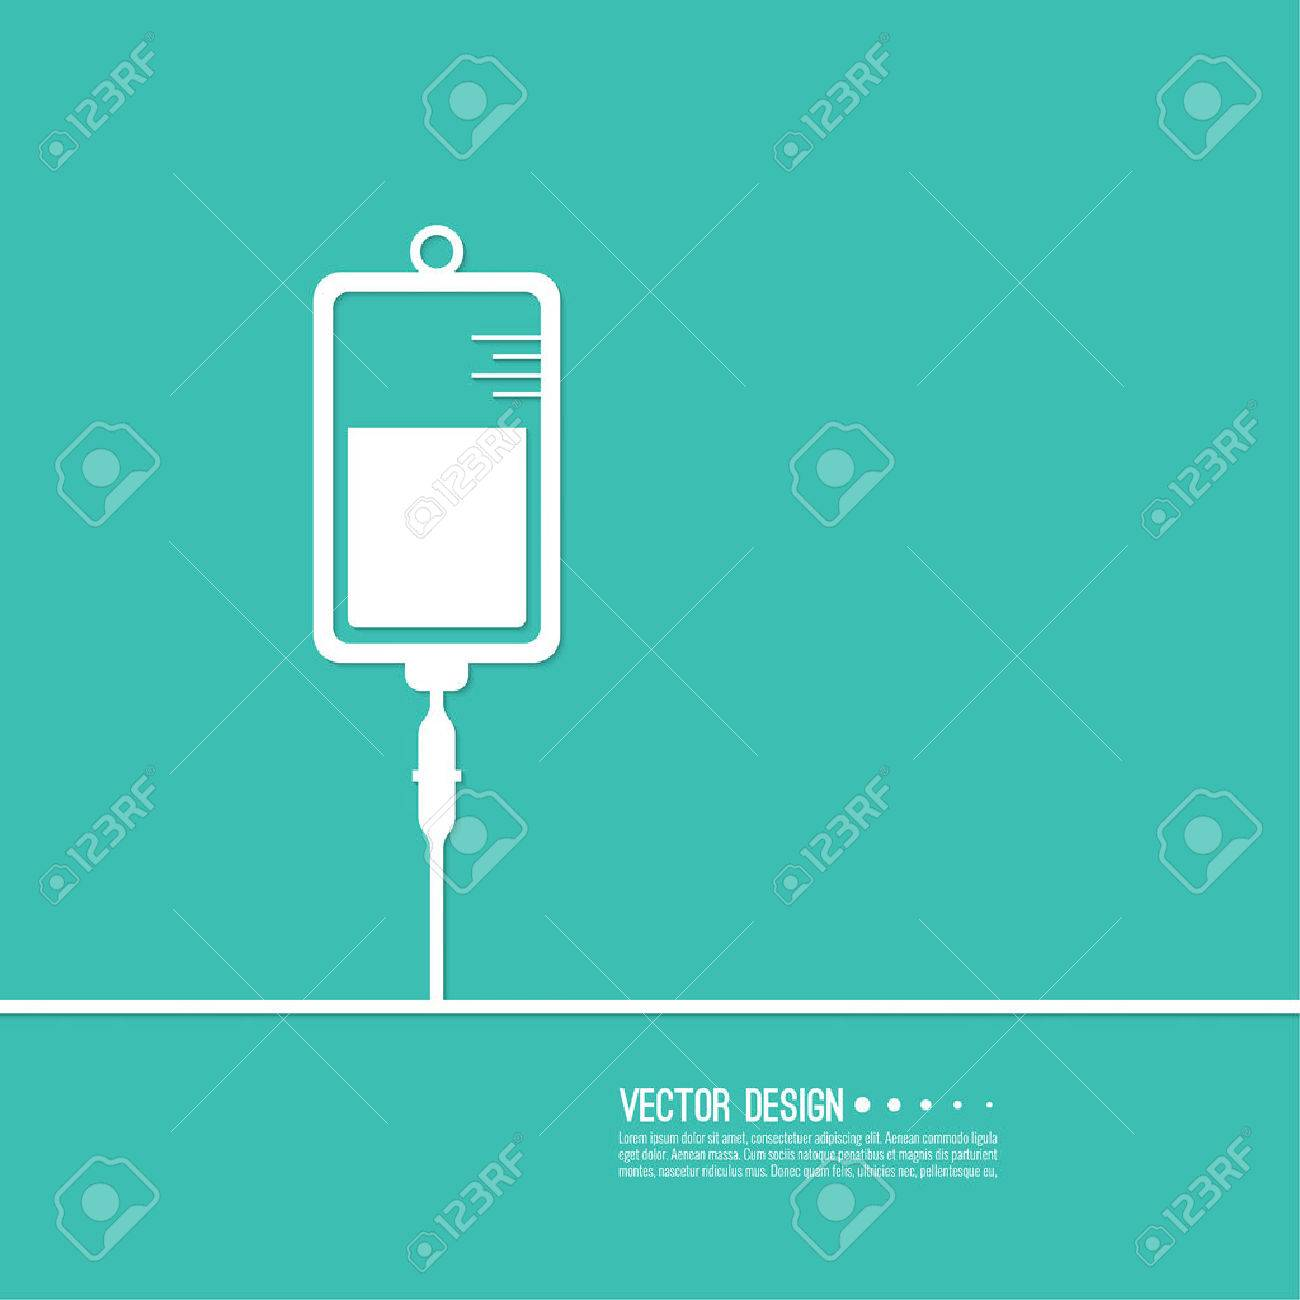 Vector iv bag icon. Saline symbol on background. Medical saline IV. The concept of treatment and therapy, chemotherapy. Modern vector design - 57406246